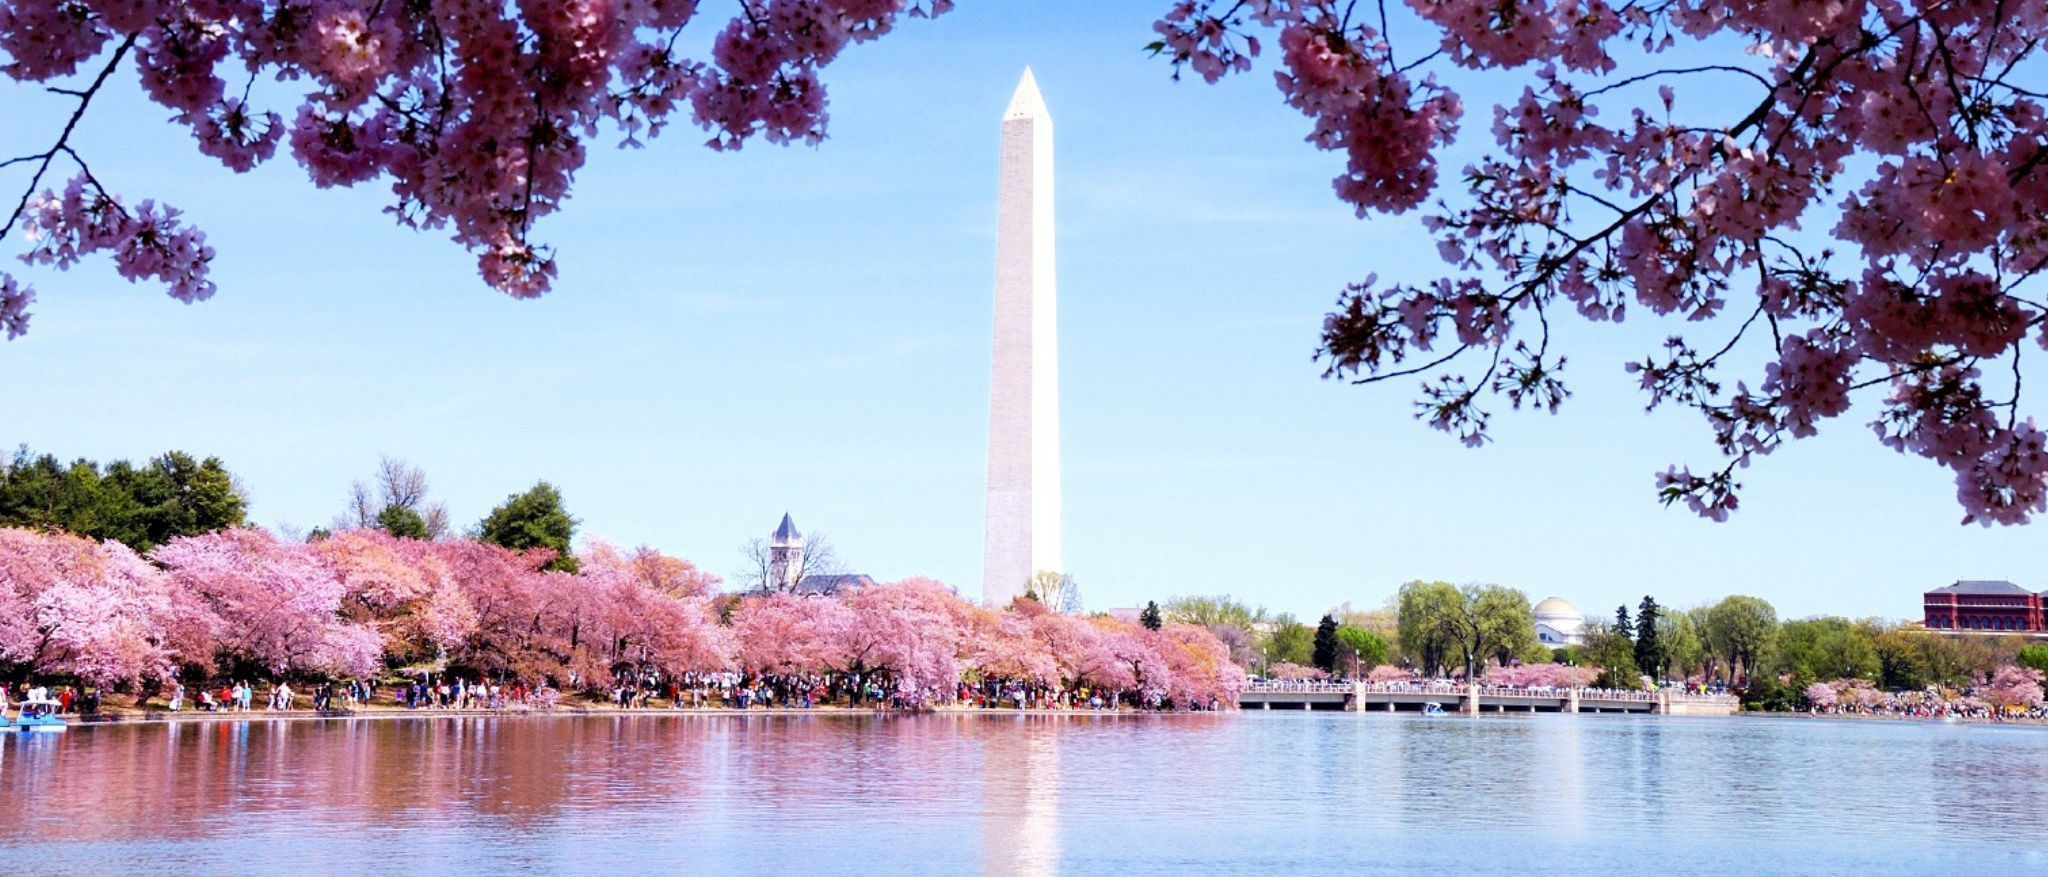 Sheraton Suites Old Town Alexandria Cherry Blossoms and The Washington Monument